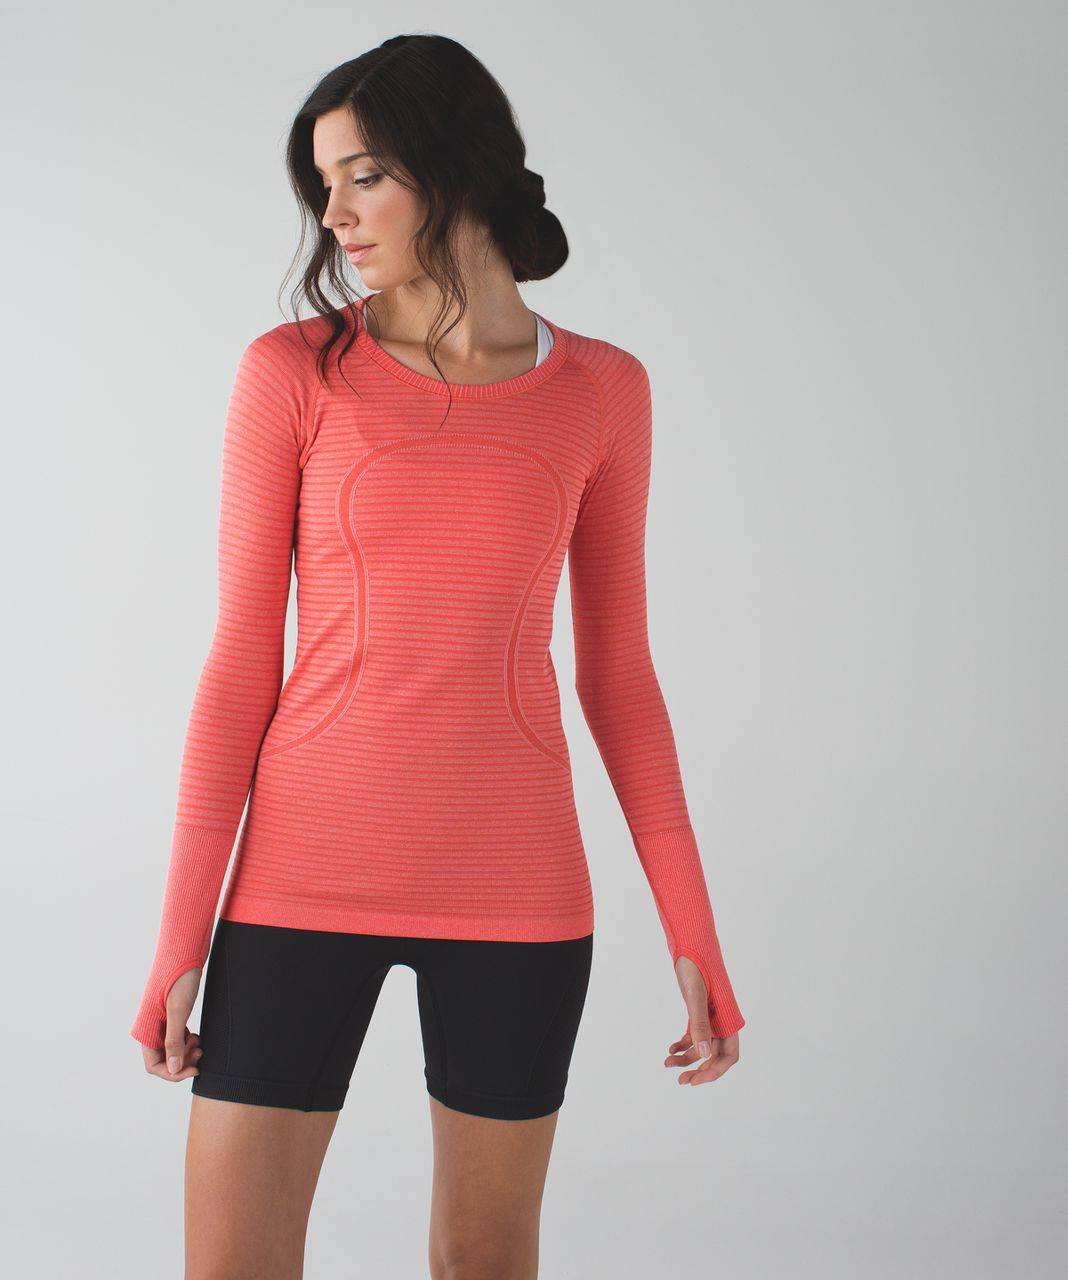 Lululemon Swiftly Tech Long Sleeve Crew - Heathered Alarming